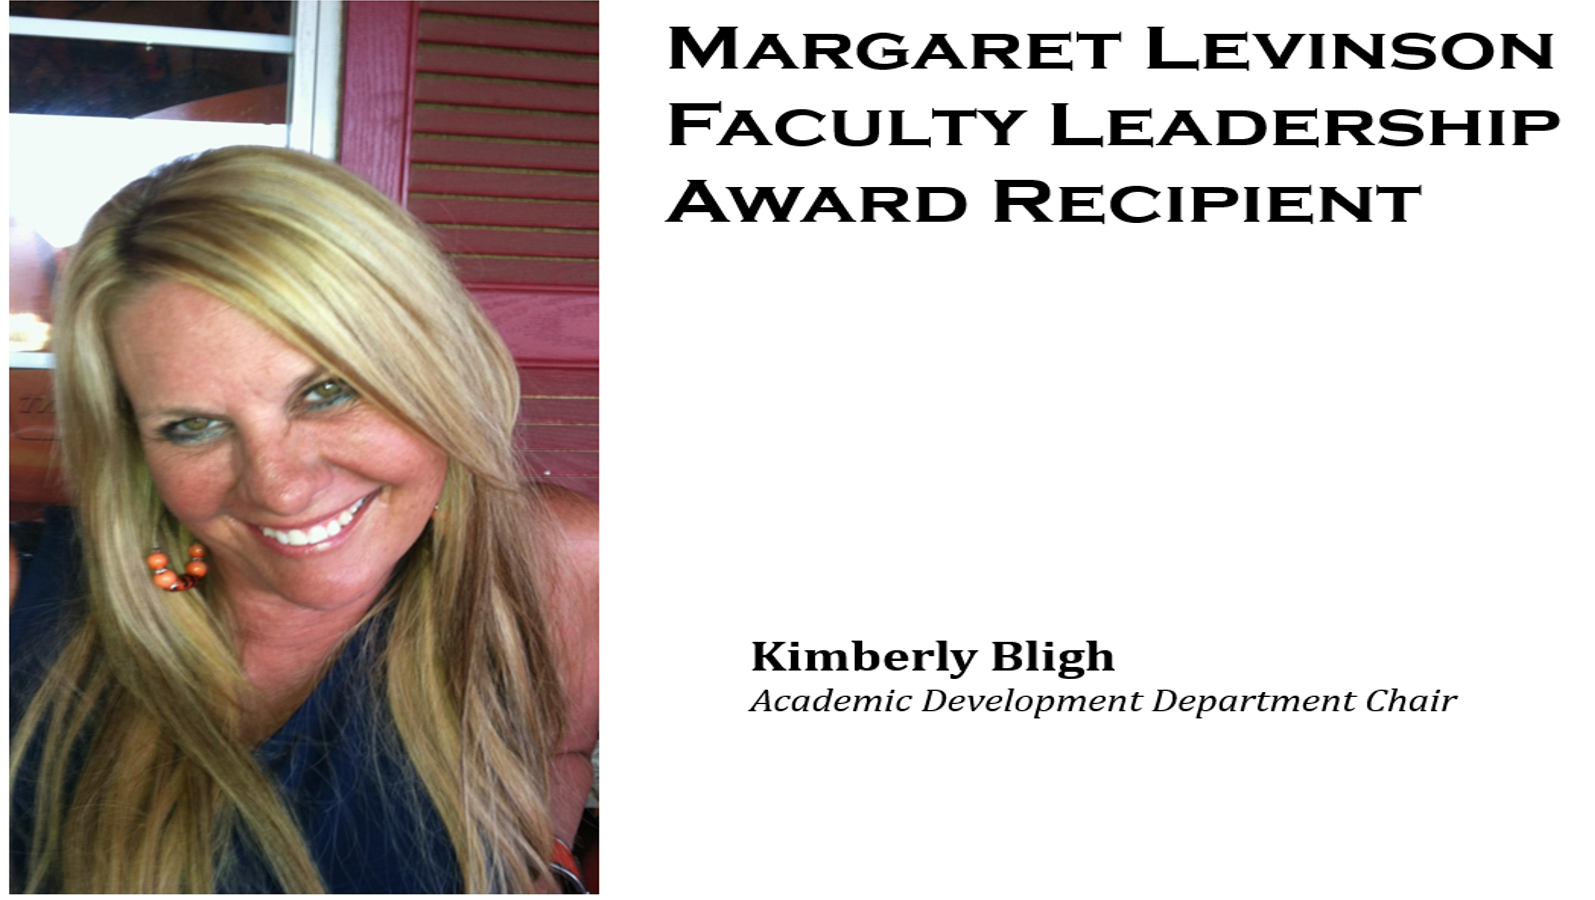 Kimberly Bligh Margaret Levinson Award Recipient May 12 2017